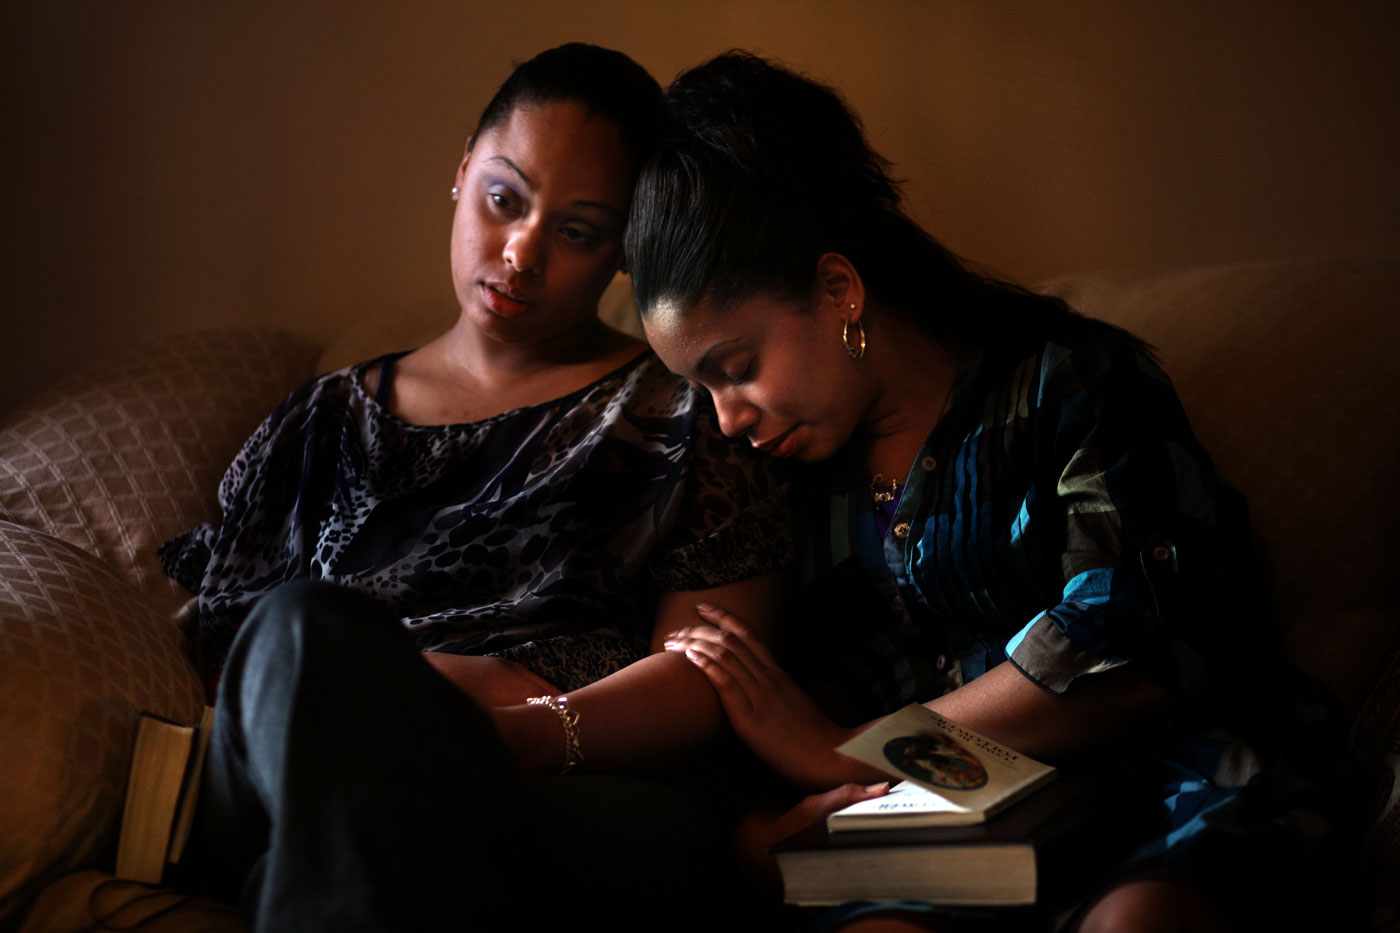 A soft afternoon light spills into the living room and Keiyana Vincent, 18, leans into her sister, Tara, 21.The two just finished their weekly family bible study and closed with a prayer.The final days are coming, and the family is bracing for a new reality.Their father, Ralph Vincent, is about to lose his job of more than 30 years in Franklin, Va. International Paper, the town's primary employer, is slated to close and Ralph's last day is soon. He is the family's main source of income and the sisters still live with their parents.The family knows they'll have to move, but the two daughters rely on each other, and their faith, for strength in these trying times.